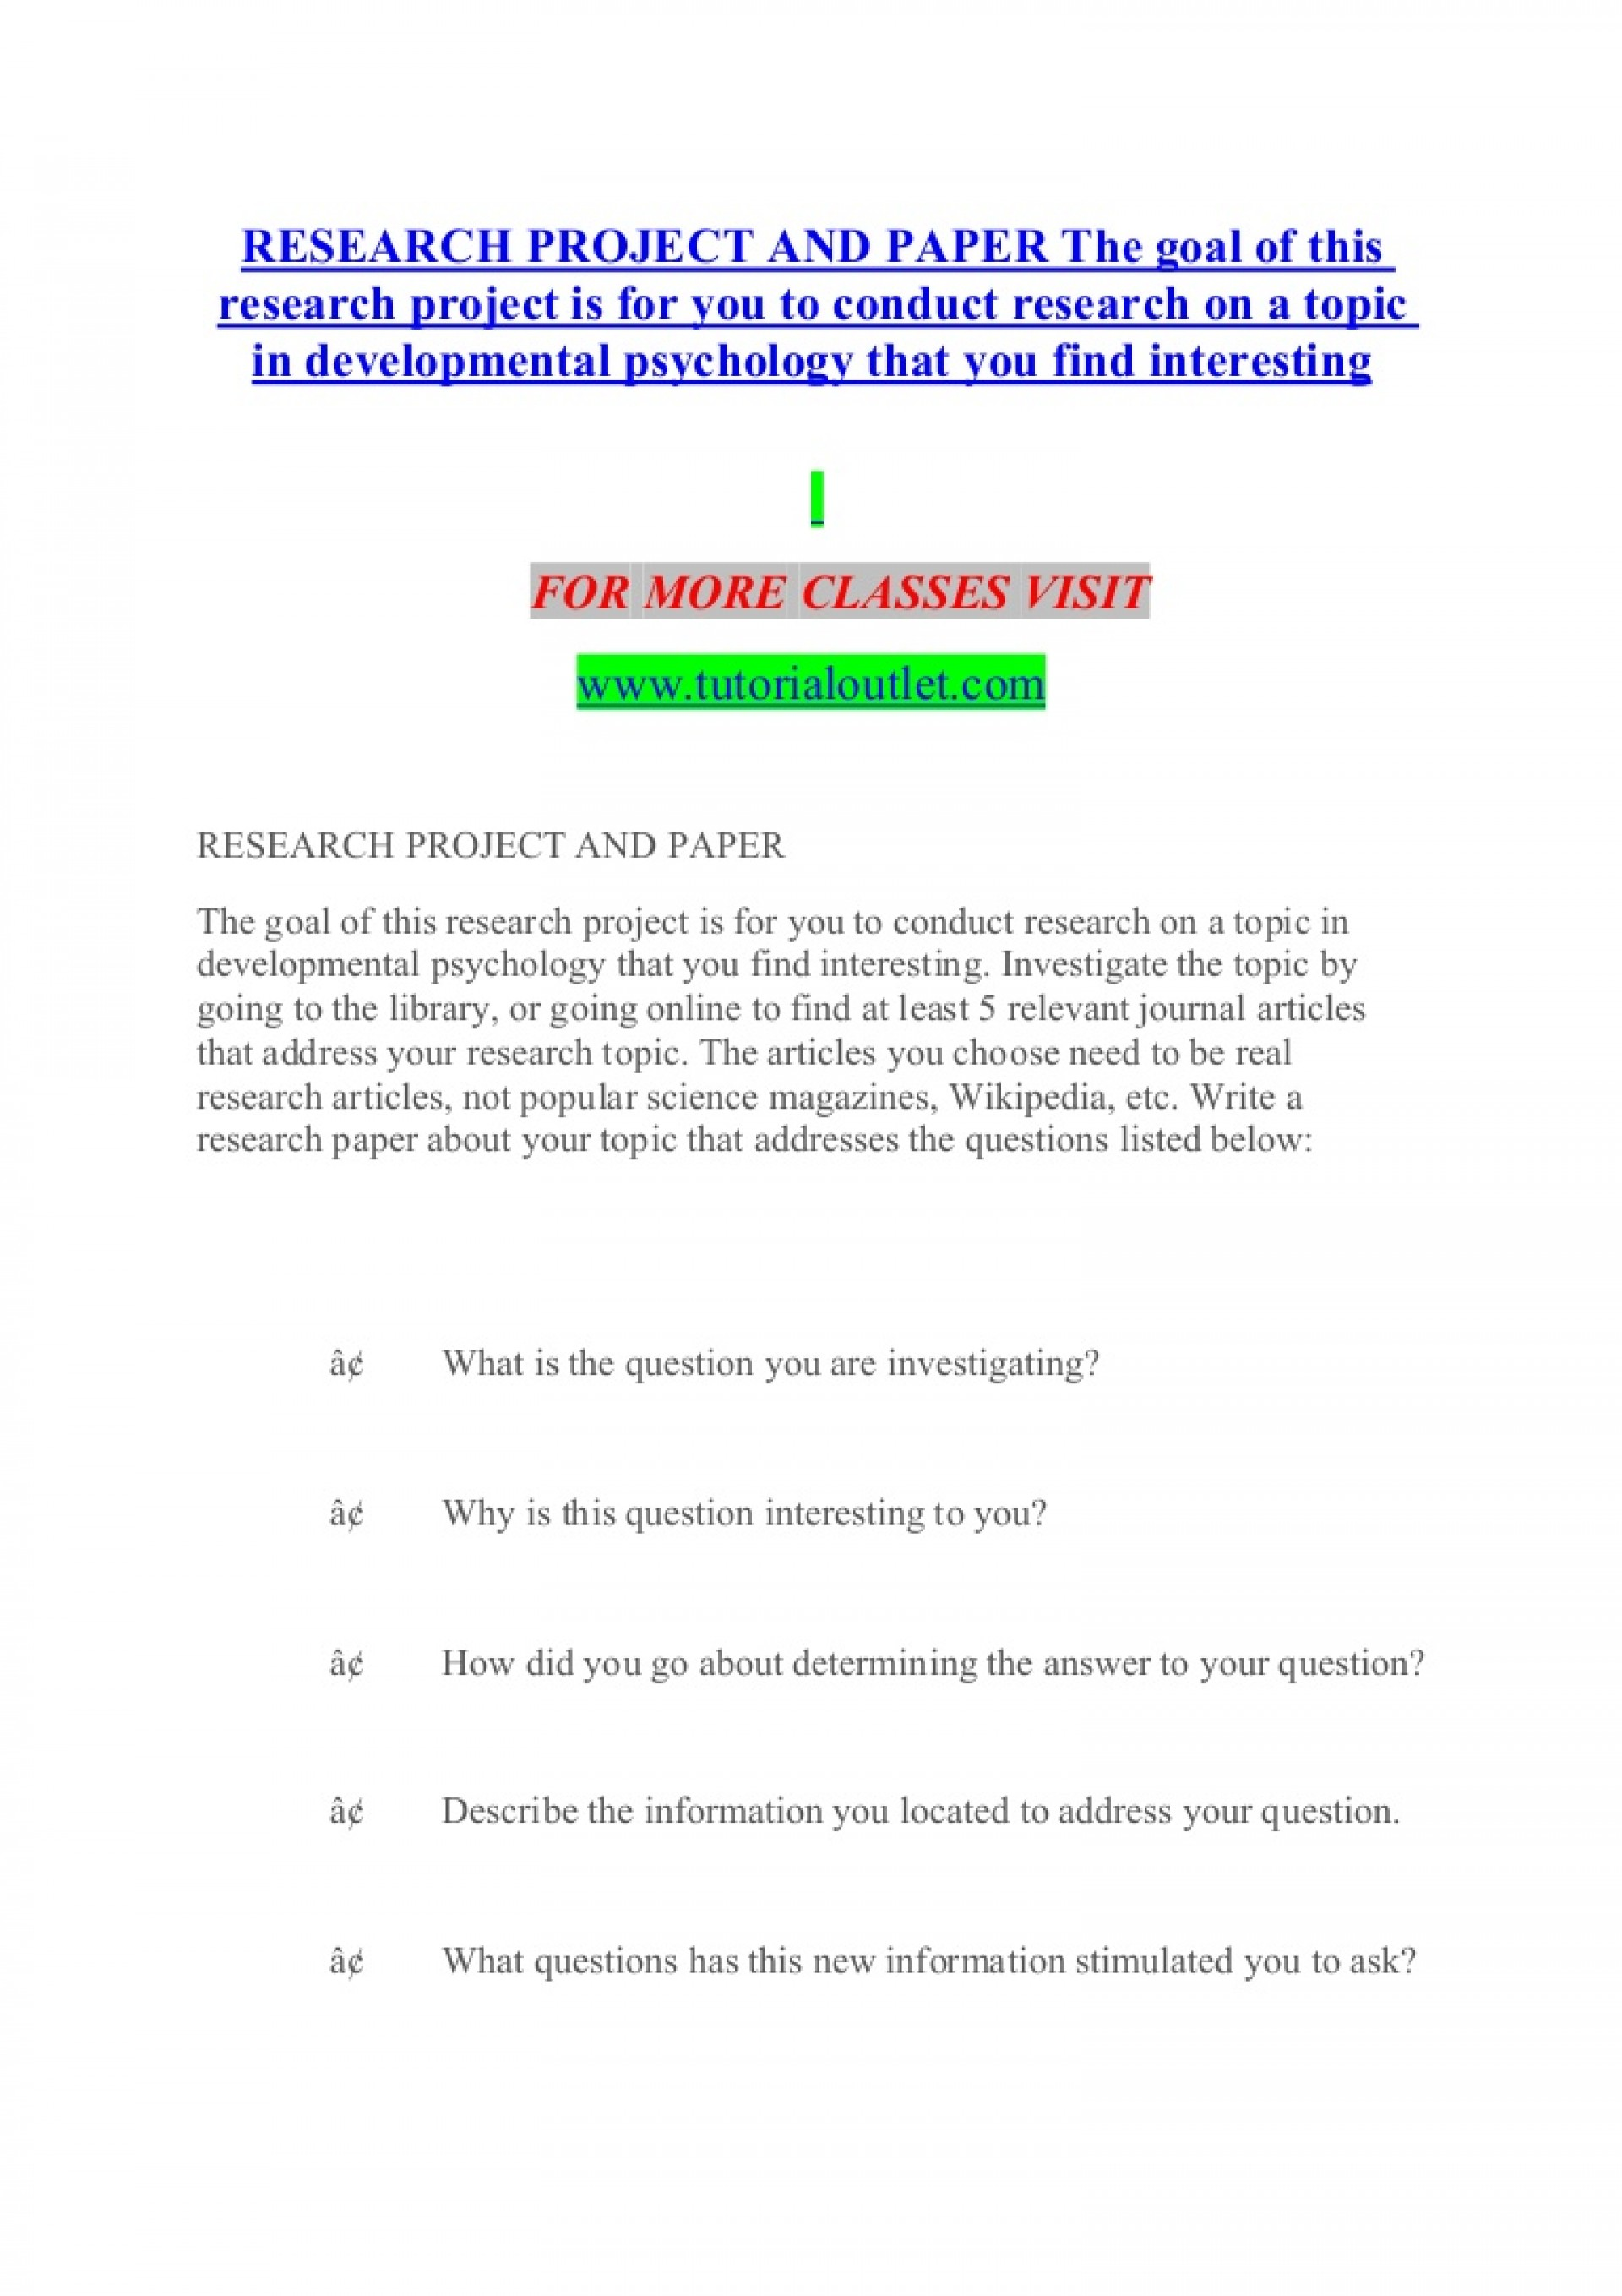 021 Research Paper Developmental Psychology Topics For Researchprojectandpaperthegoalofthisresearchprojectisforyoutoconductresearchonatopicindevelopmentalp Thumbnail Dreaded Potential 1920